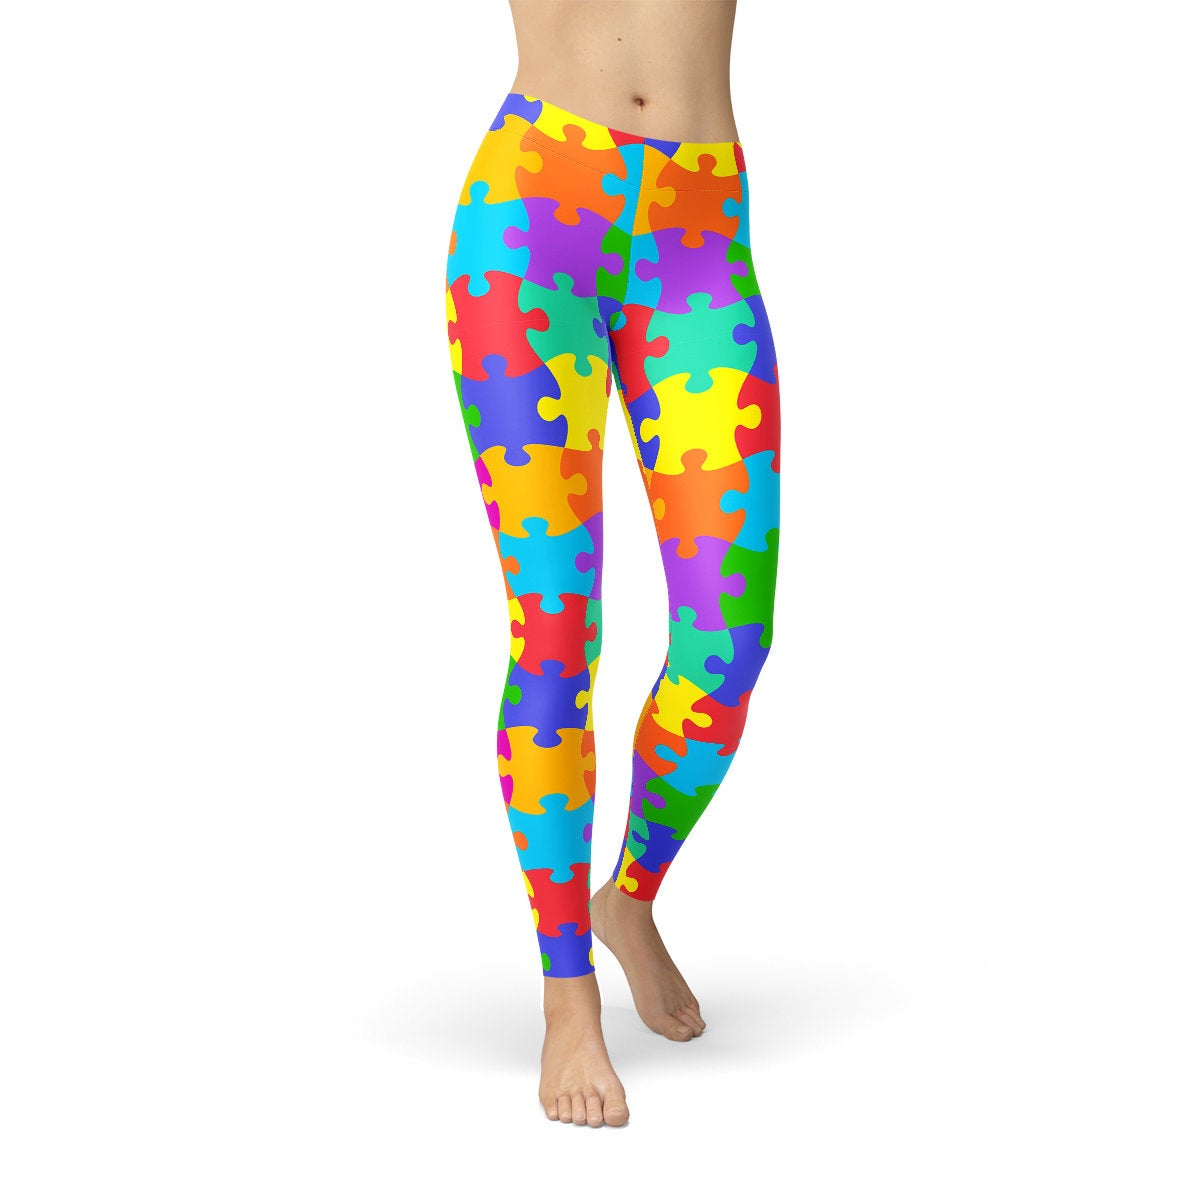 Jigsaw Puzzle Rainbow Leggings For Women All Over Print | Etsy - Puzzle Print Leggings